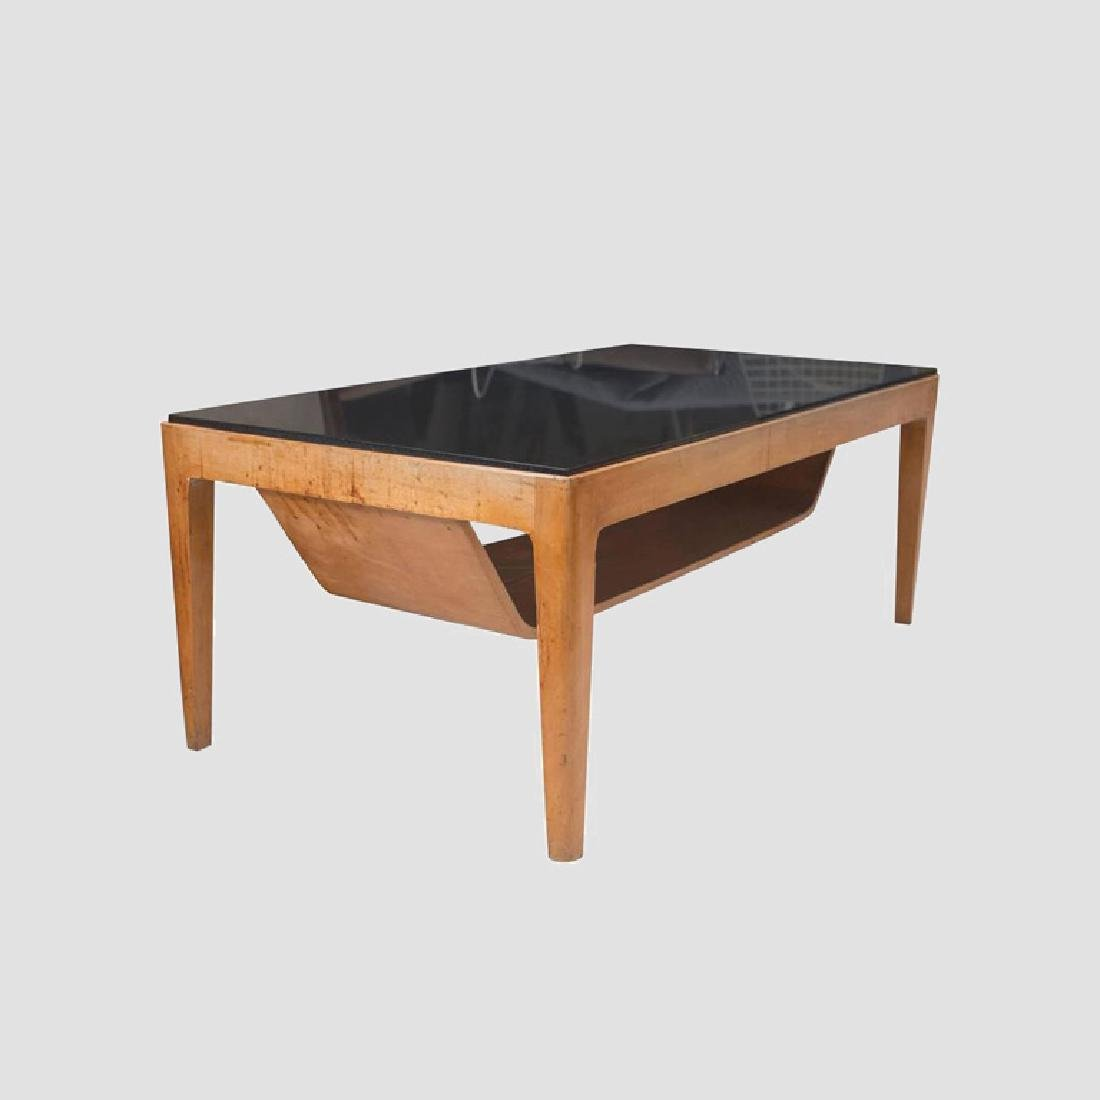 1950's Italian Coffee Table with Nero Andes Top